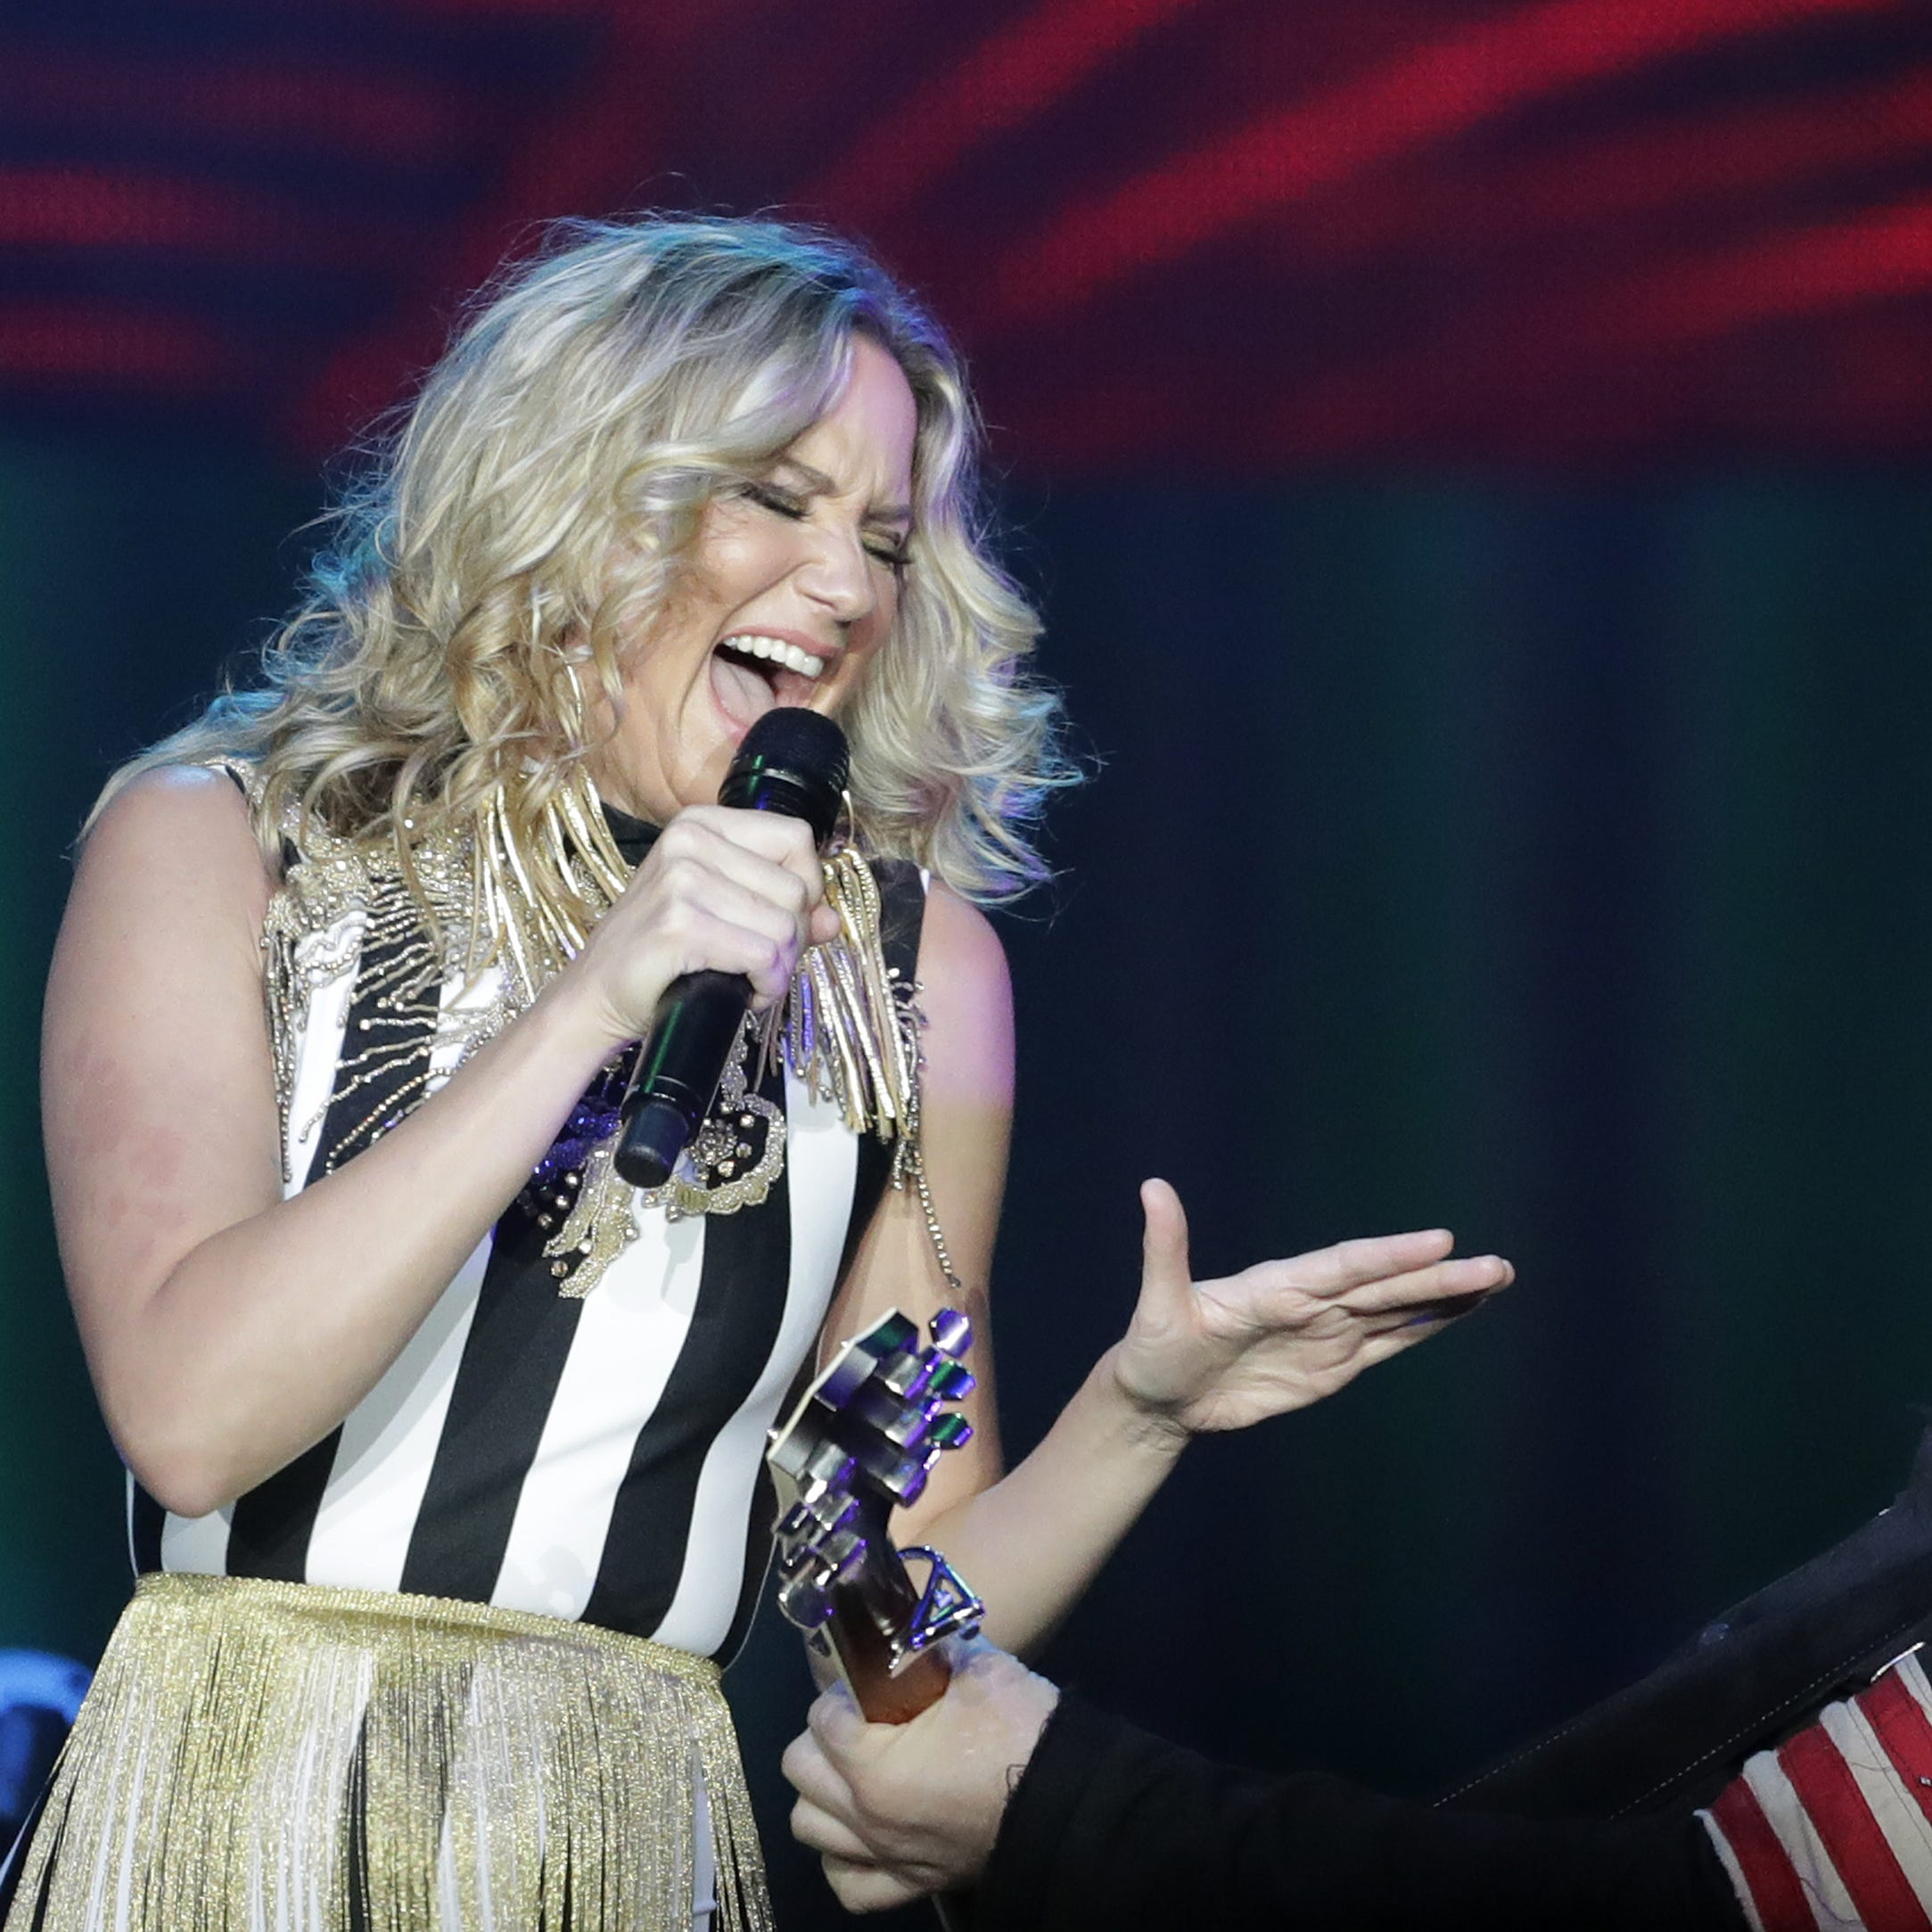 Bouncy and breezy, Sugarland's Resch show felt like a Saturday night summer vacation